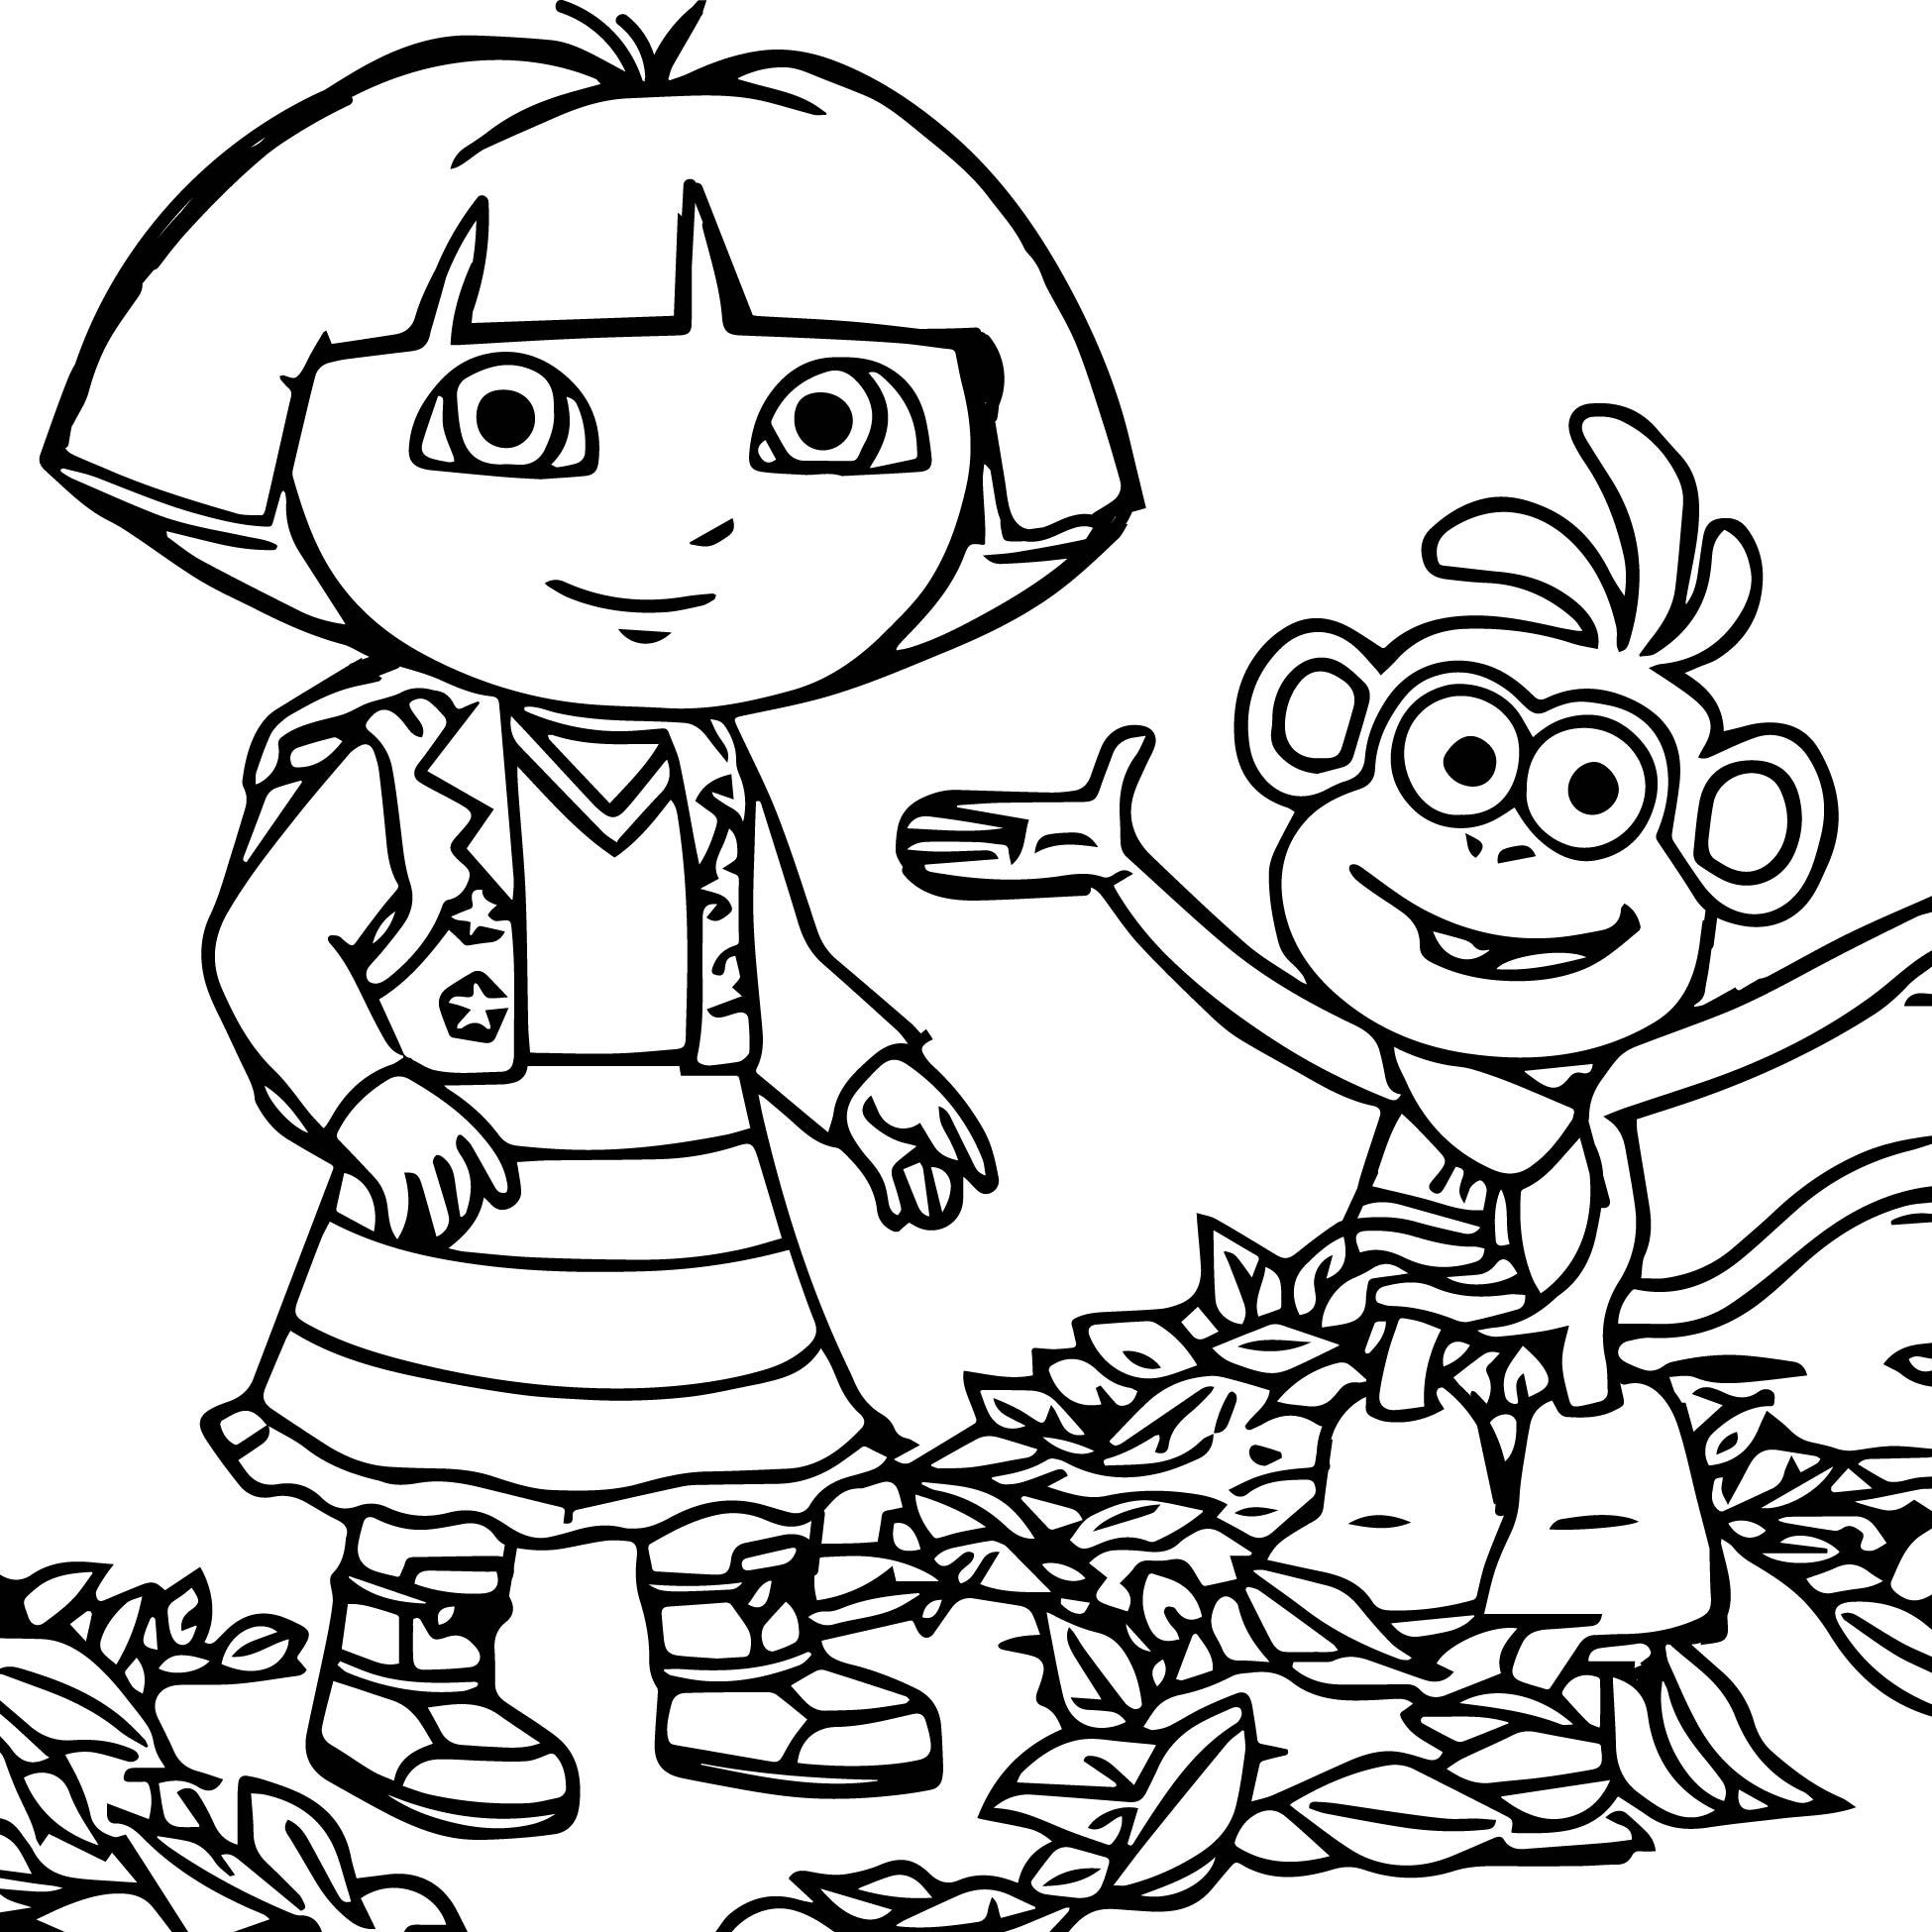 coloring pages dora and friends dora and friends drawing at getdrawings free download and coloring dora pages friends